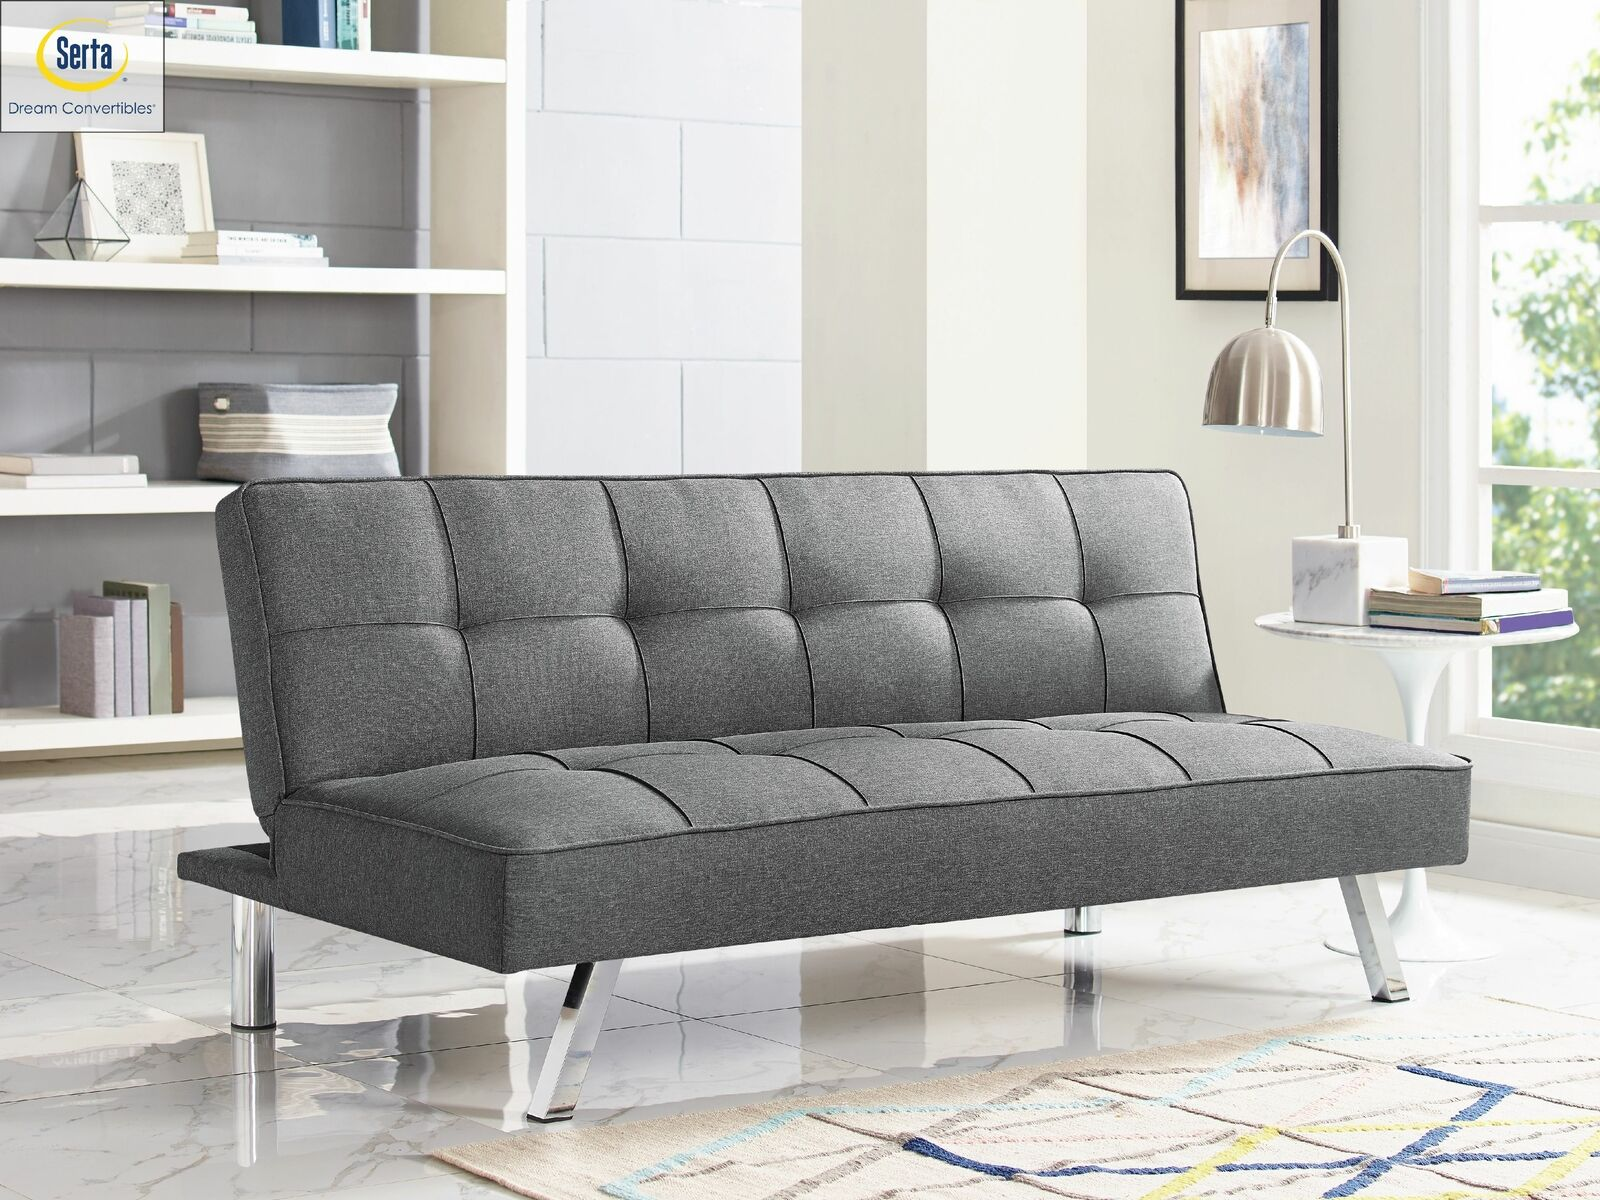 Picture of: Modern Sofa Bed Serta Futon Couch Convertible Sleeper Microfiber Seat Charcoal 0812189011261 For Sale Online